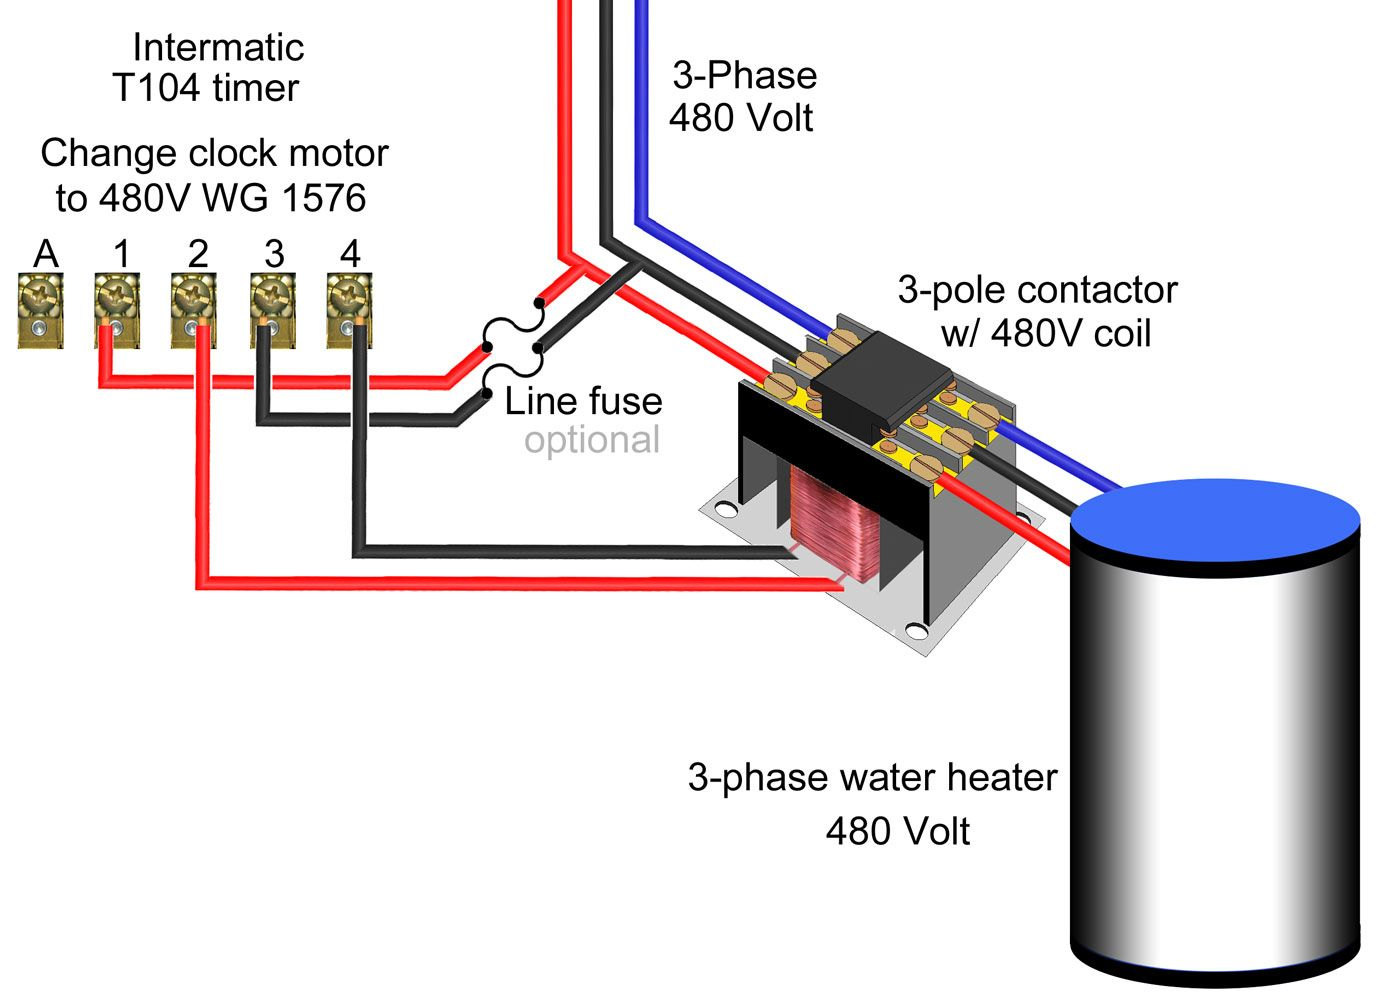 ab contactor wiring diagram ab image wiring diagram 480v contactor coil wiring diagram 480v contactor coil wiring on ab contactor wiring diagram